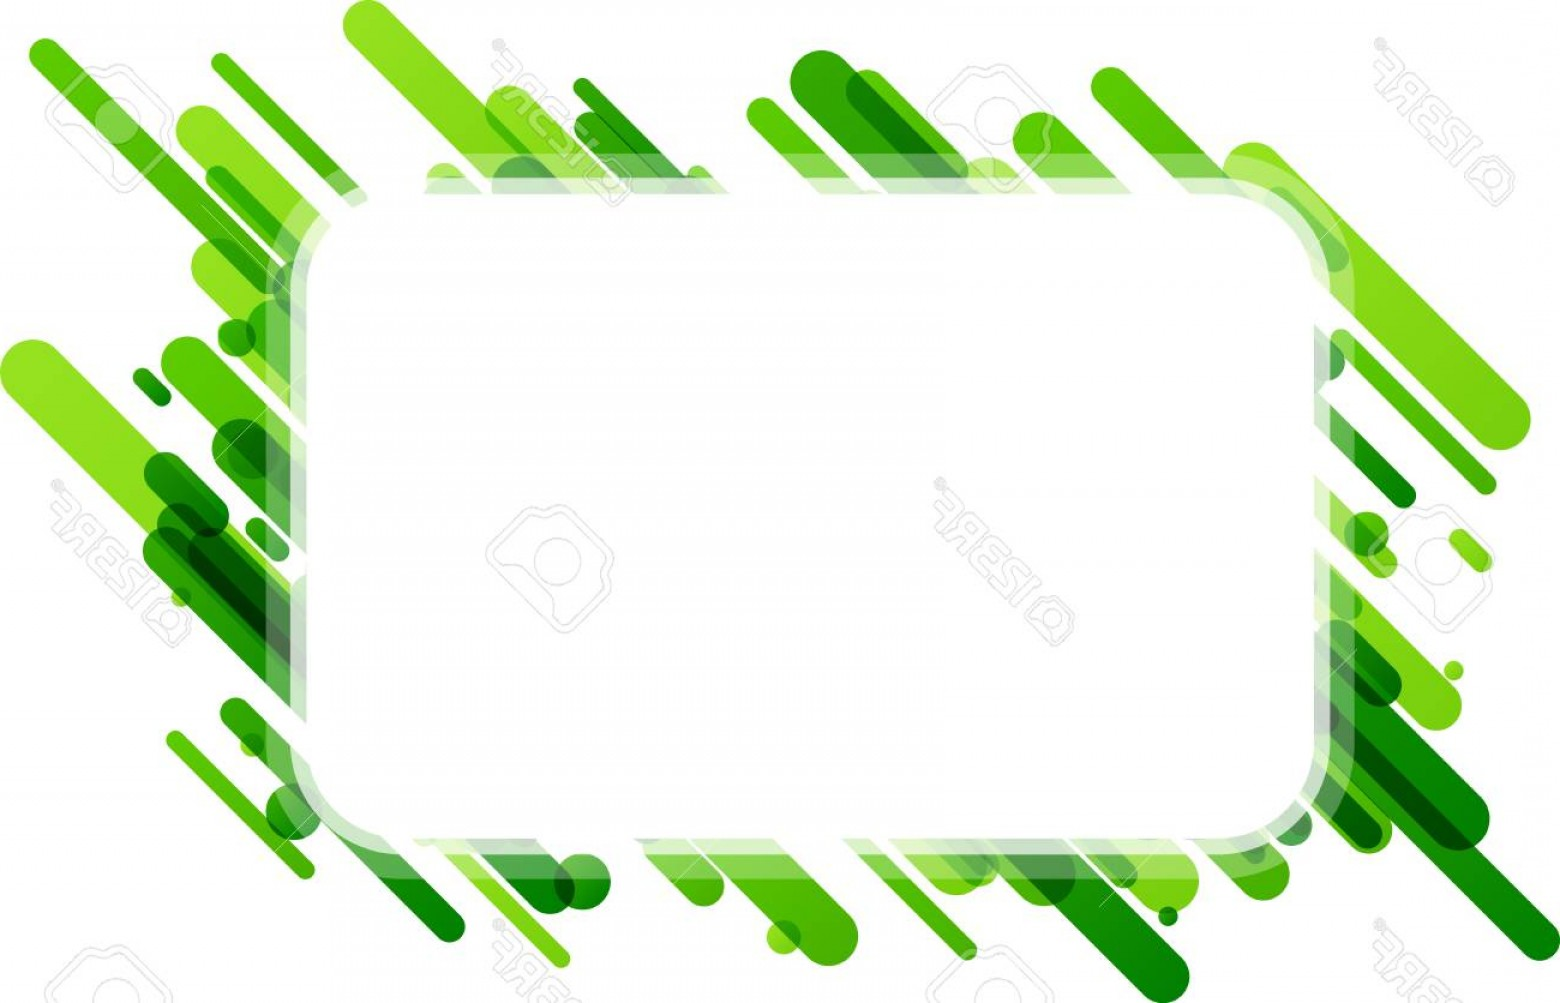 Green And White Vector: Photostock Vector Green Rectangular Abstract Background On White Vector Paper Illustration